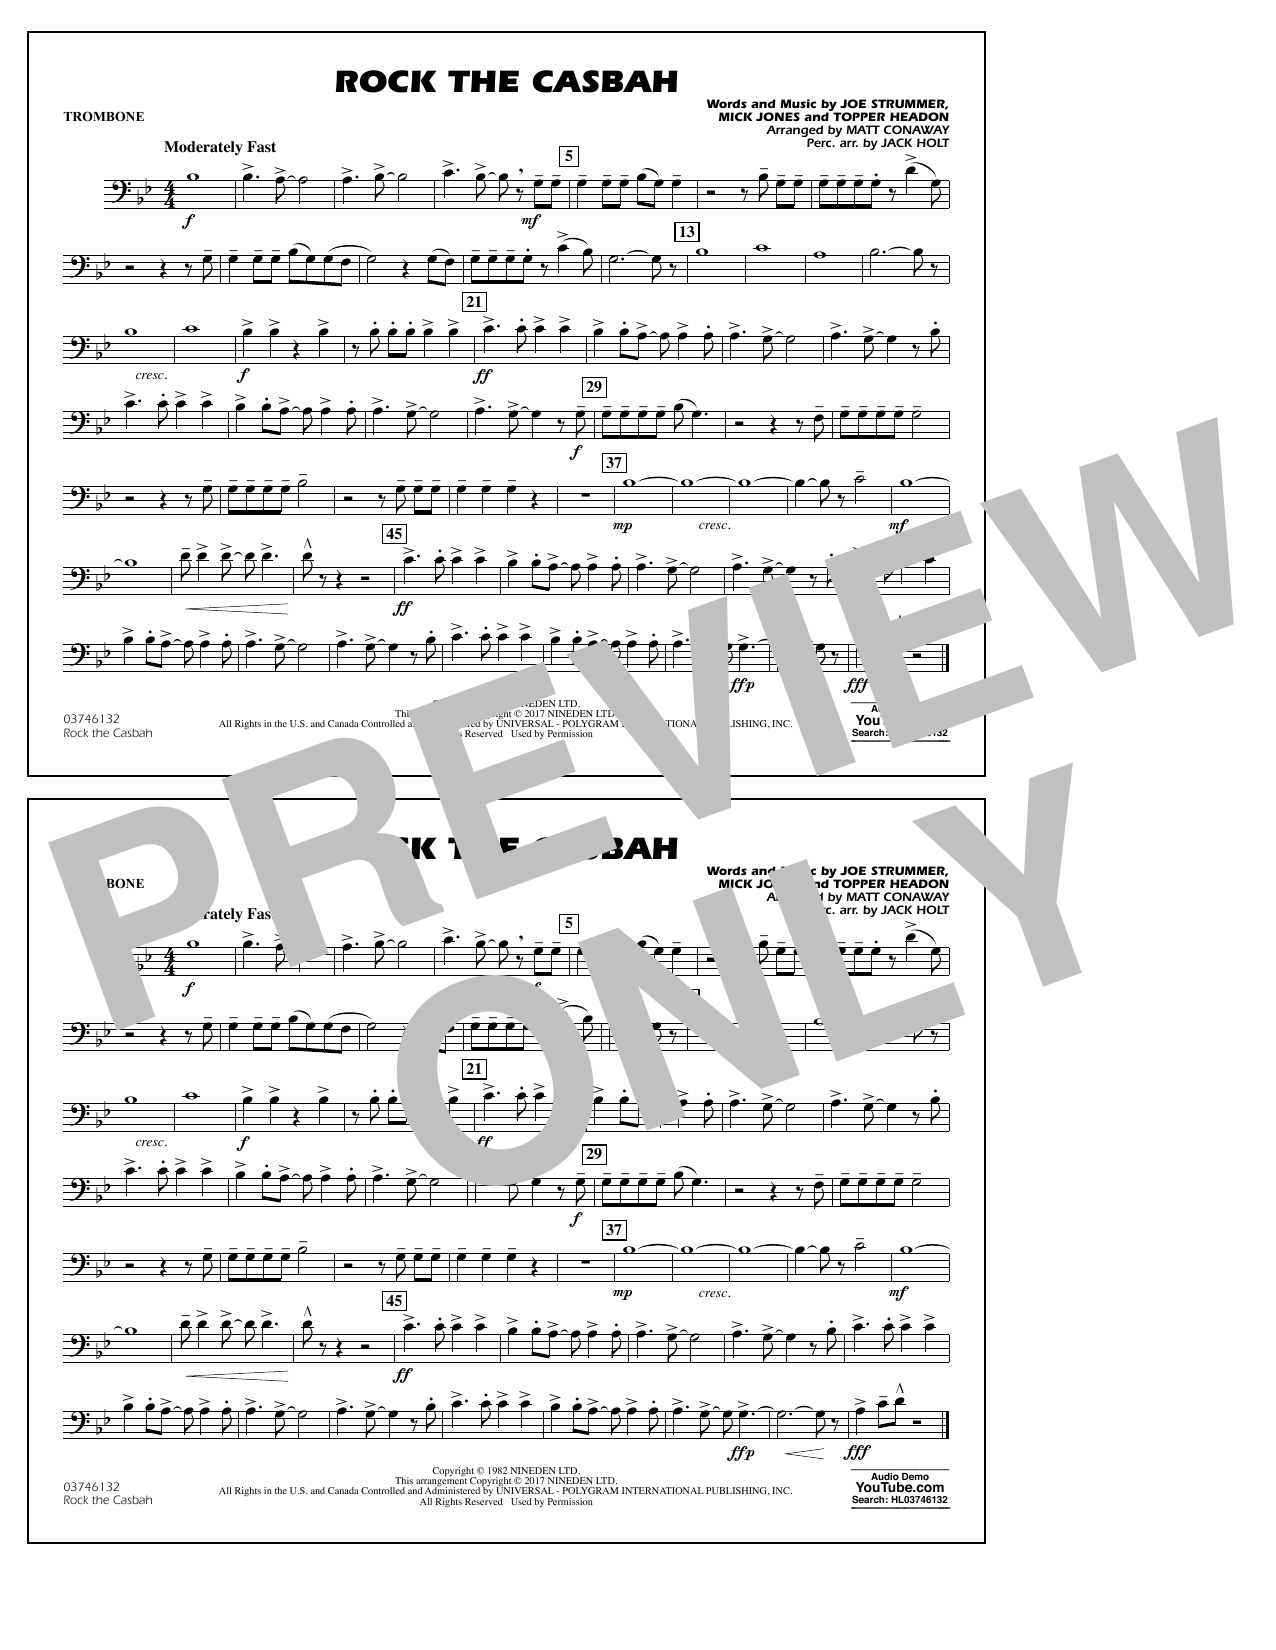 Rock the Casbah - Trombone Sheet Music